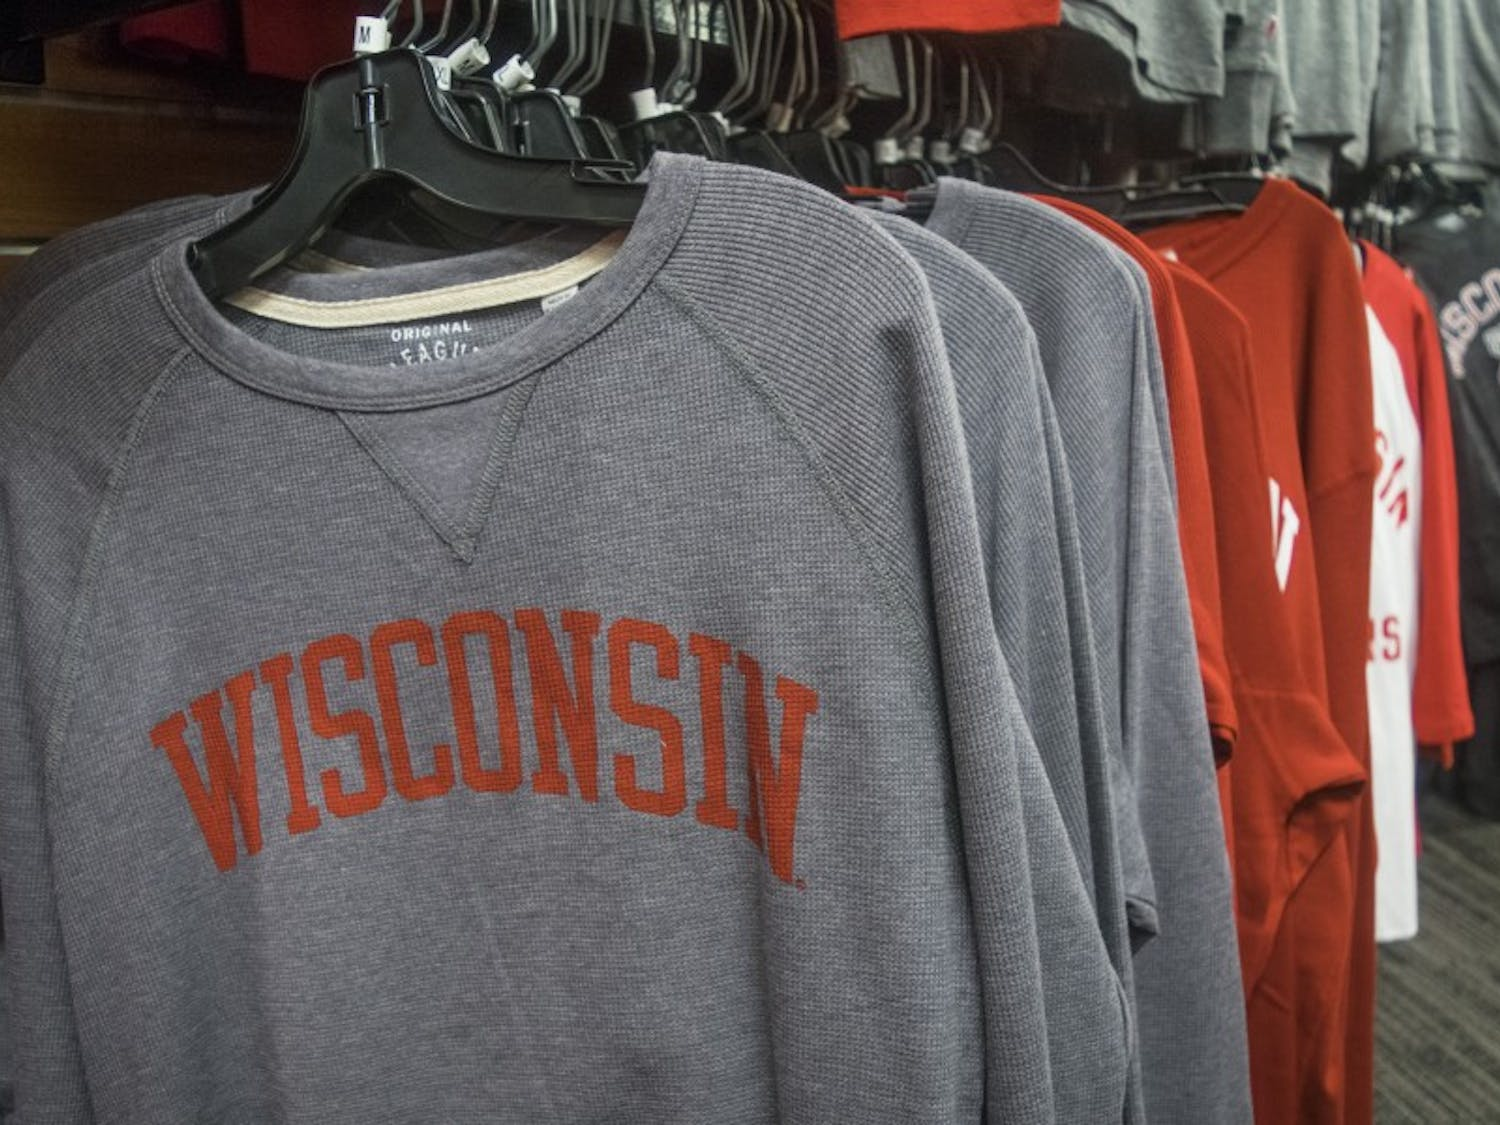 If the Senate version of the GOP tax bill becomes law, UW-Madison's scholarship funds could take a hit.